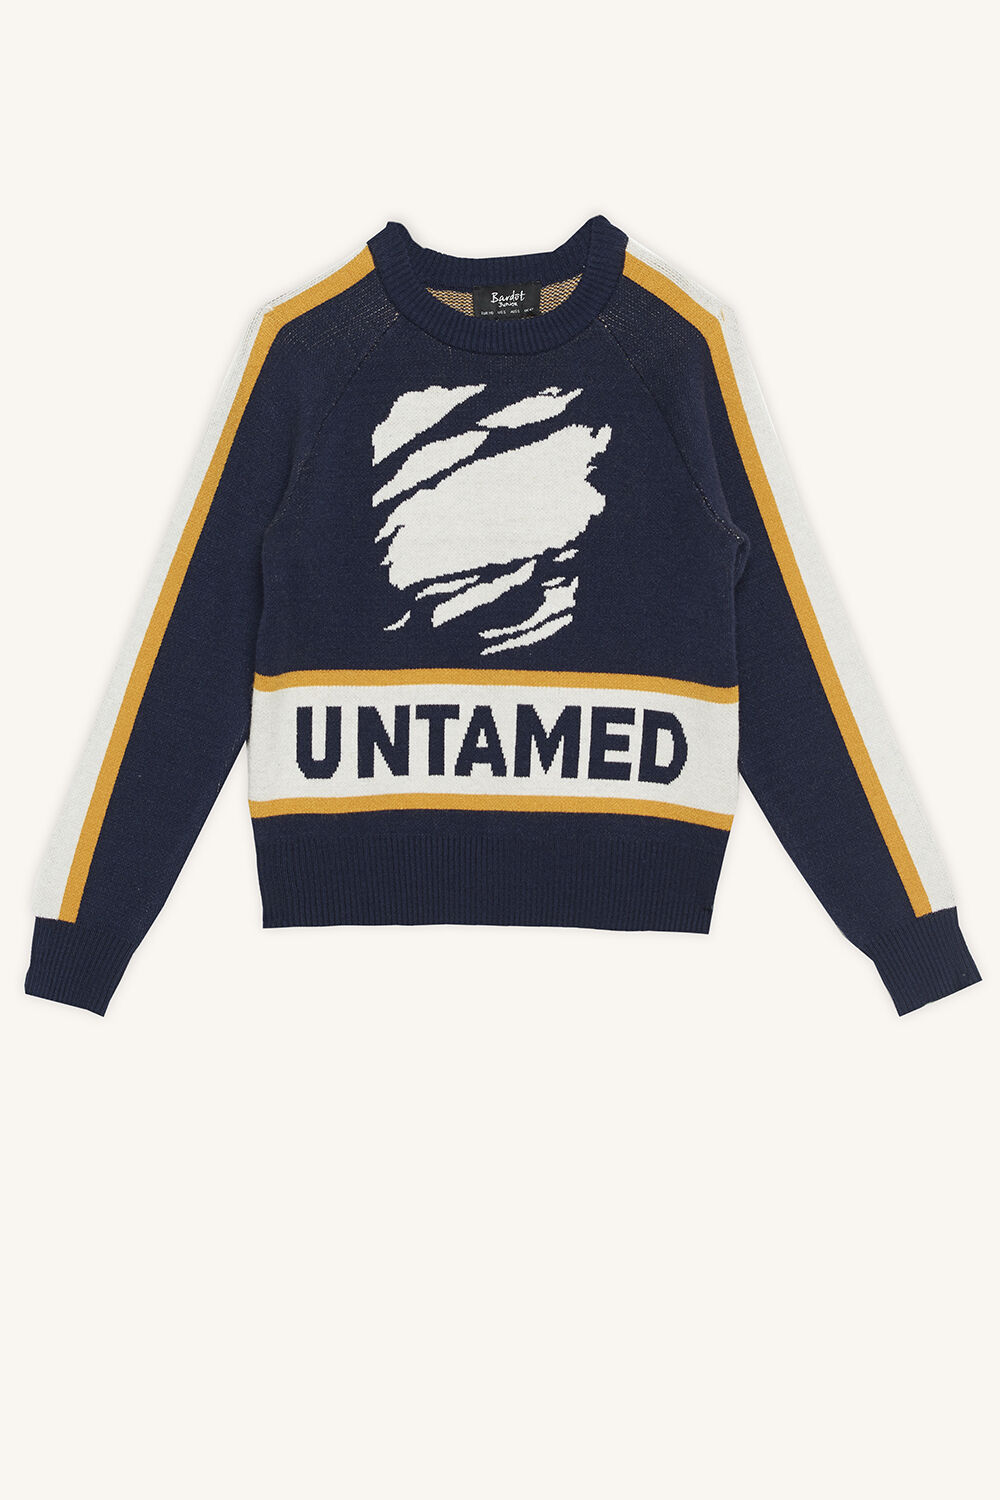 UNTAMED KNIT SWEATER in colour BLACK IRIS